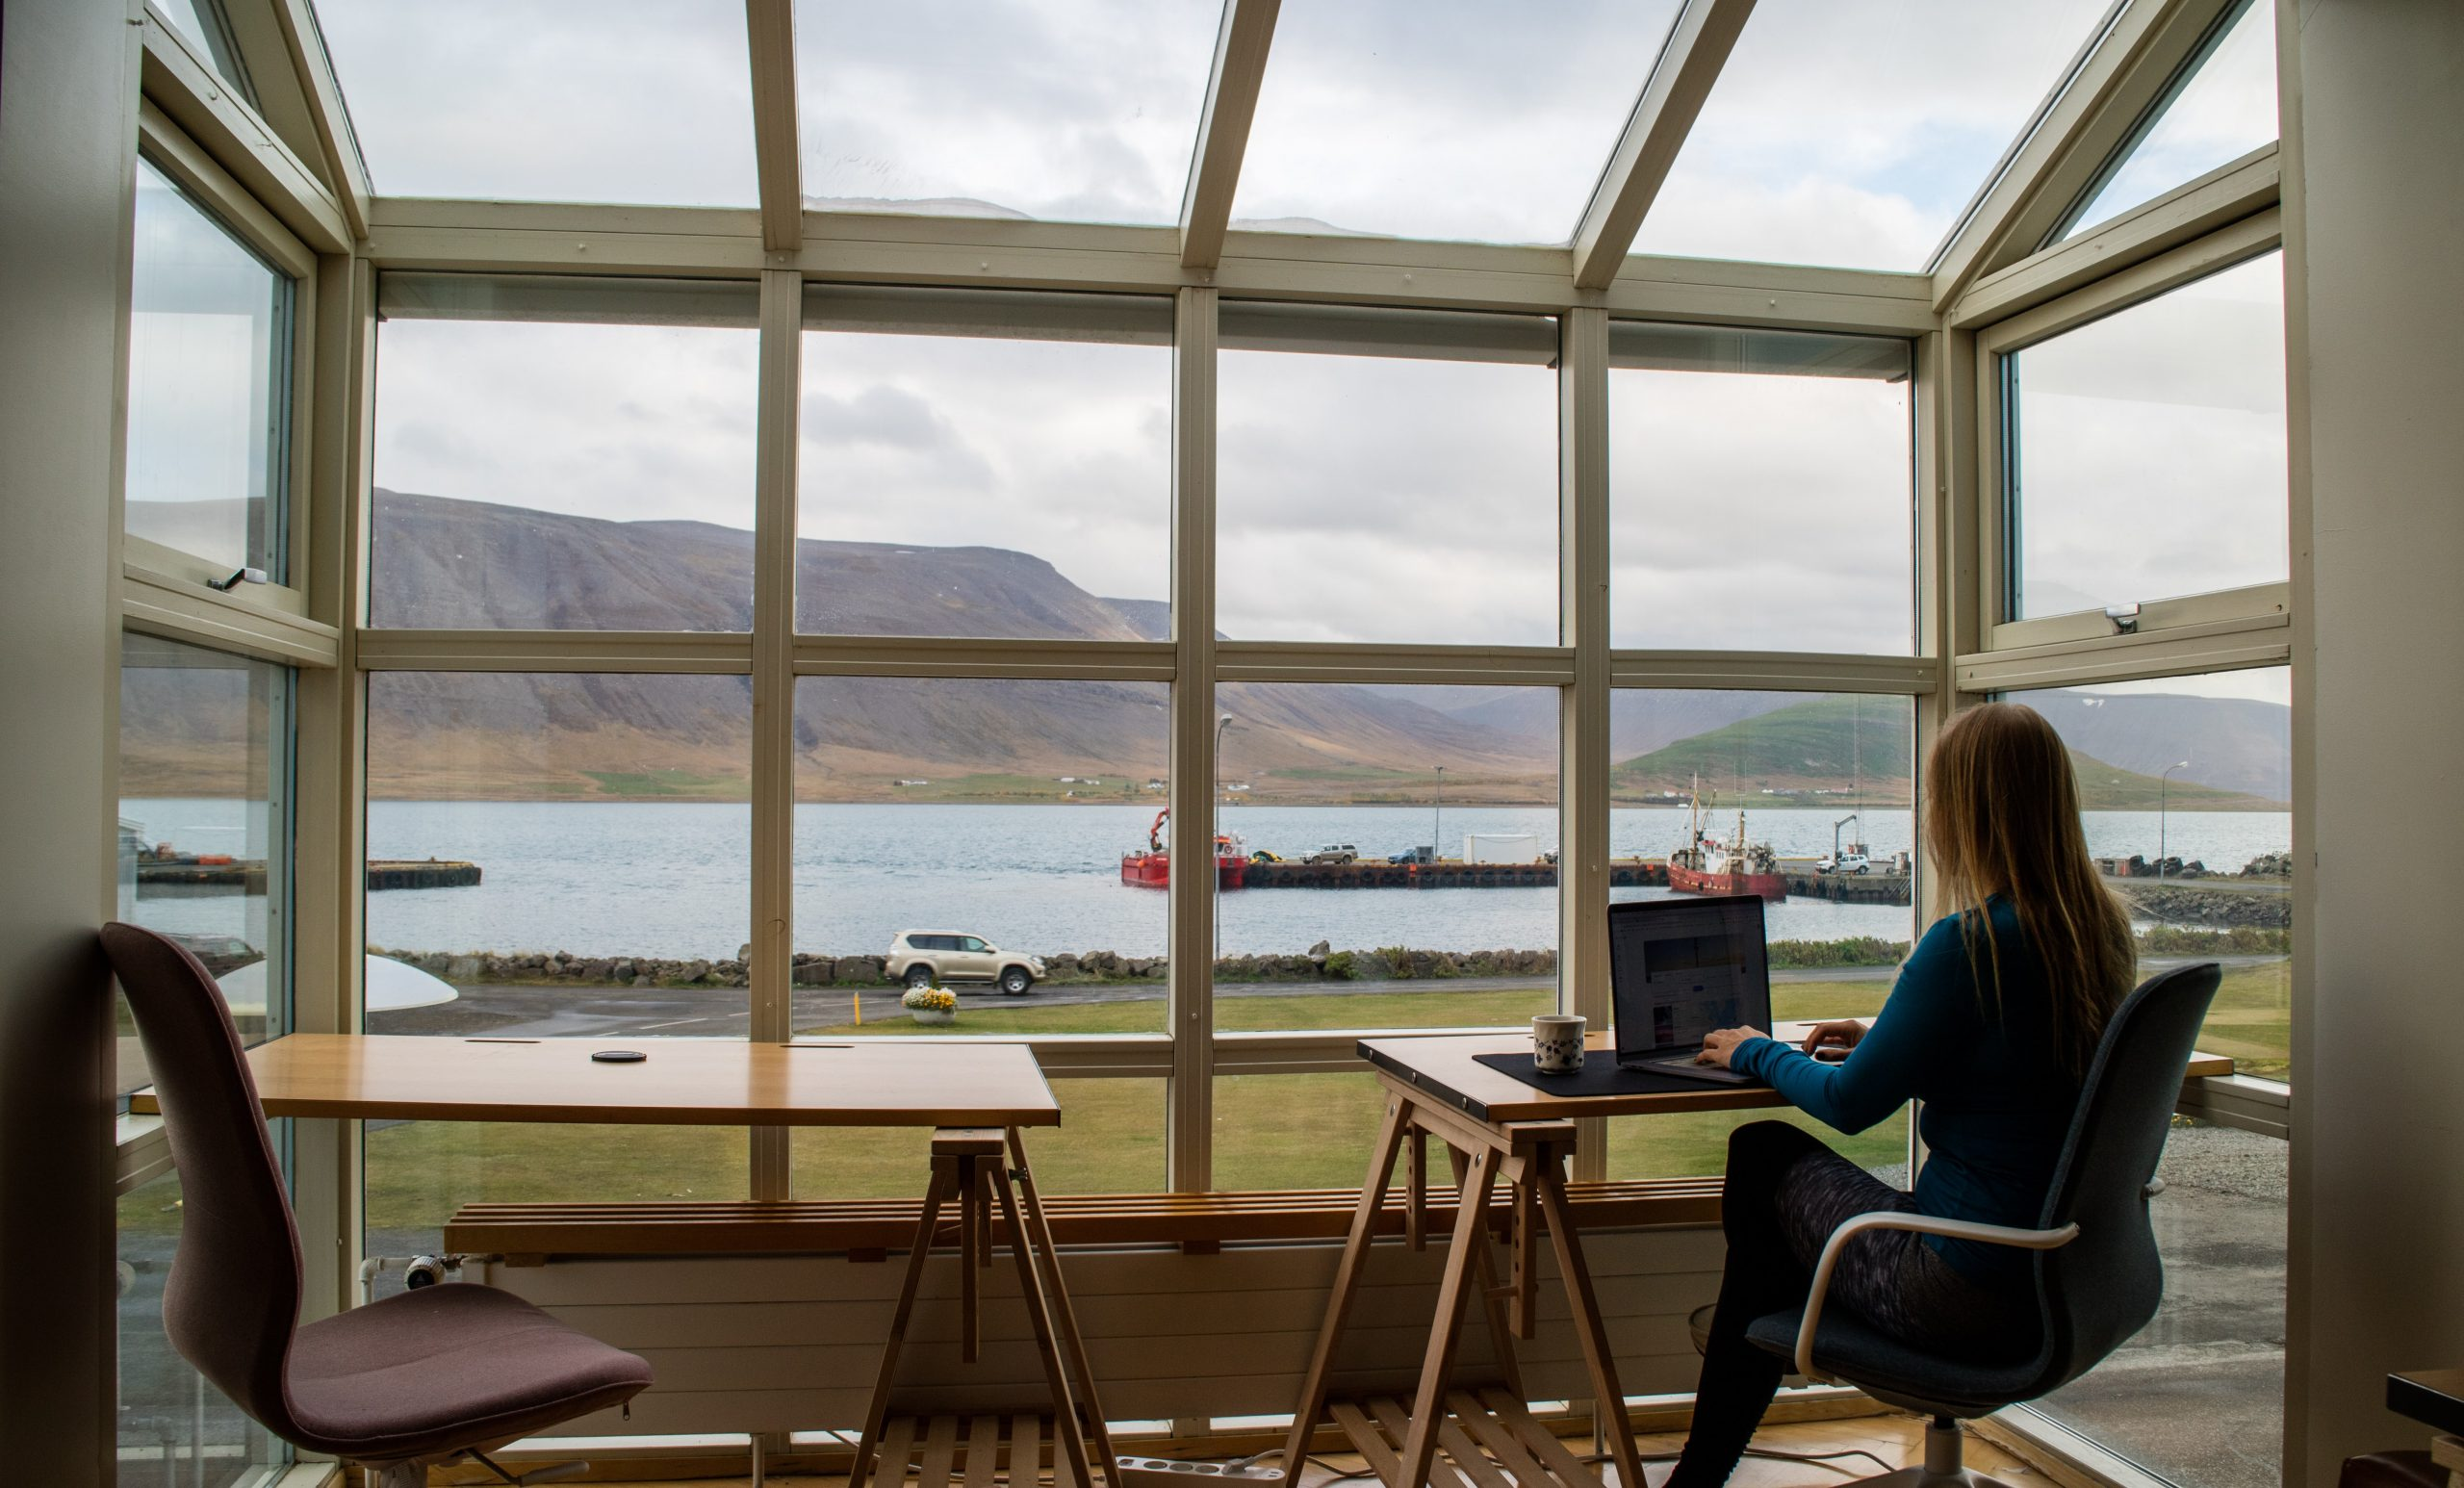 A white woman sits in a conservatory extension, looking out to sea and the beach. She is sat at a small wooden desk with a MacBook computer on top.